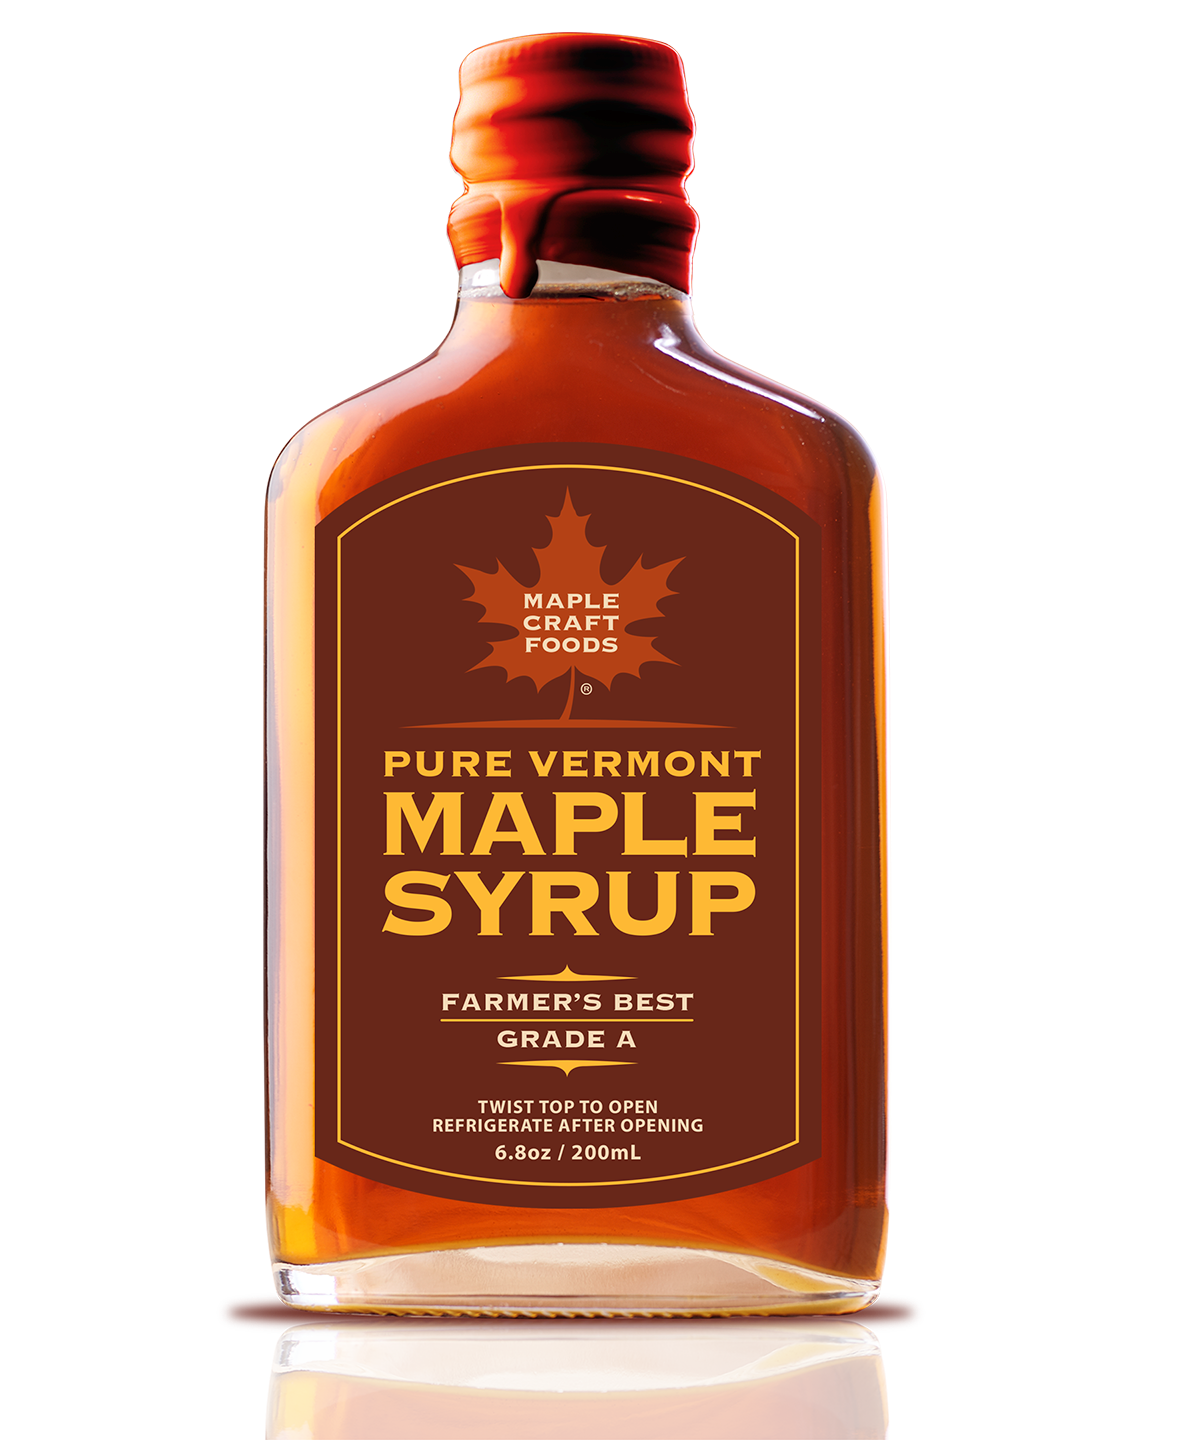 Farmer's Best Pure Vermont Maple Syrup